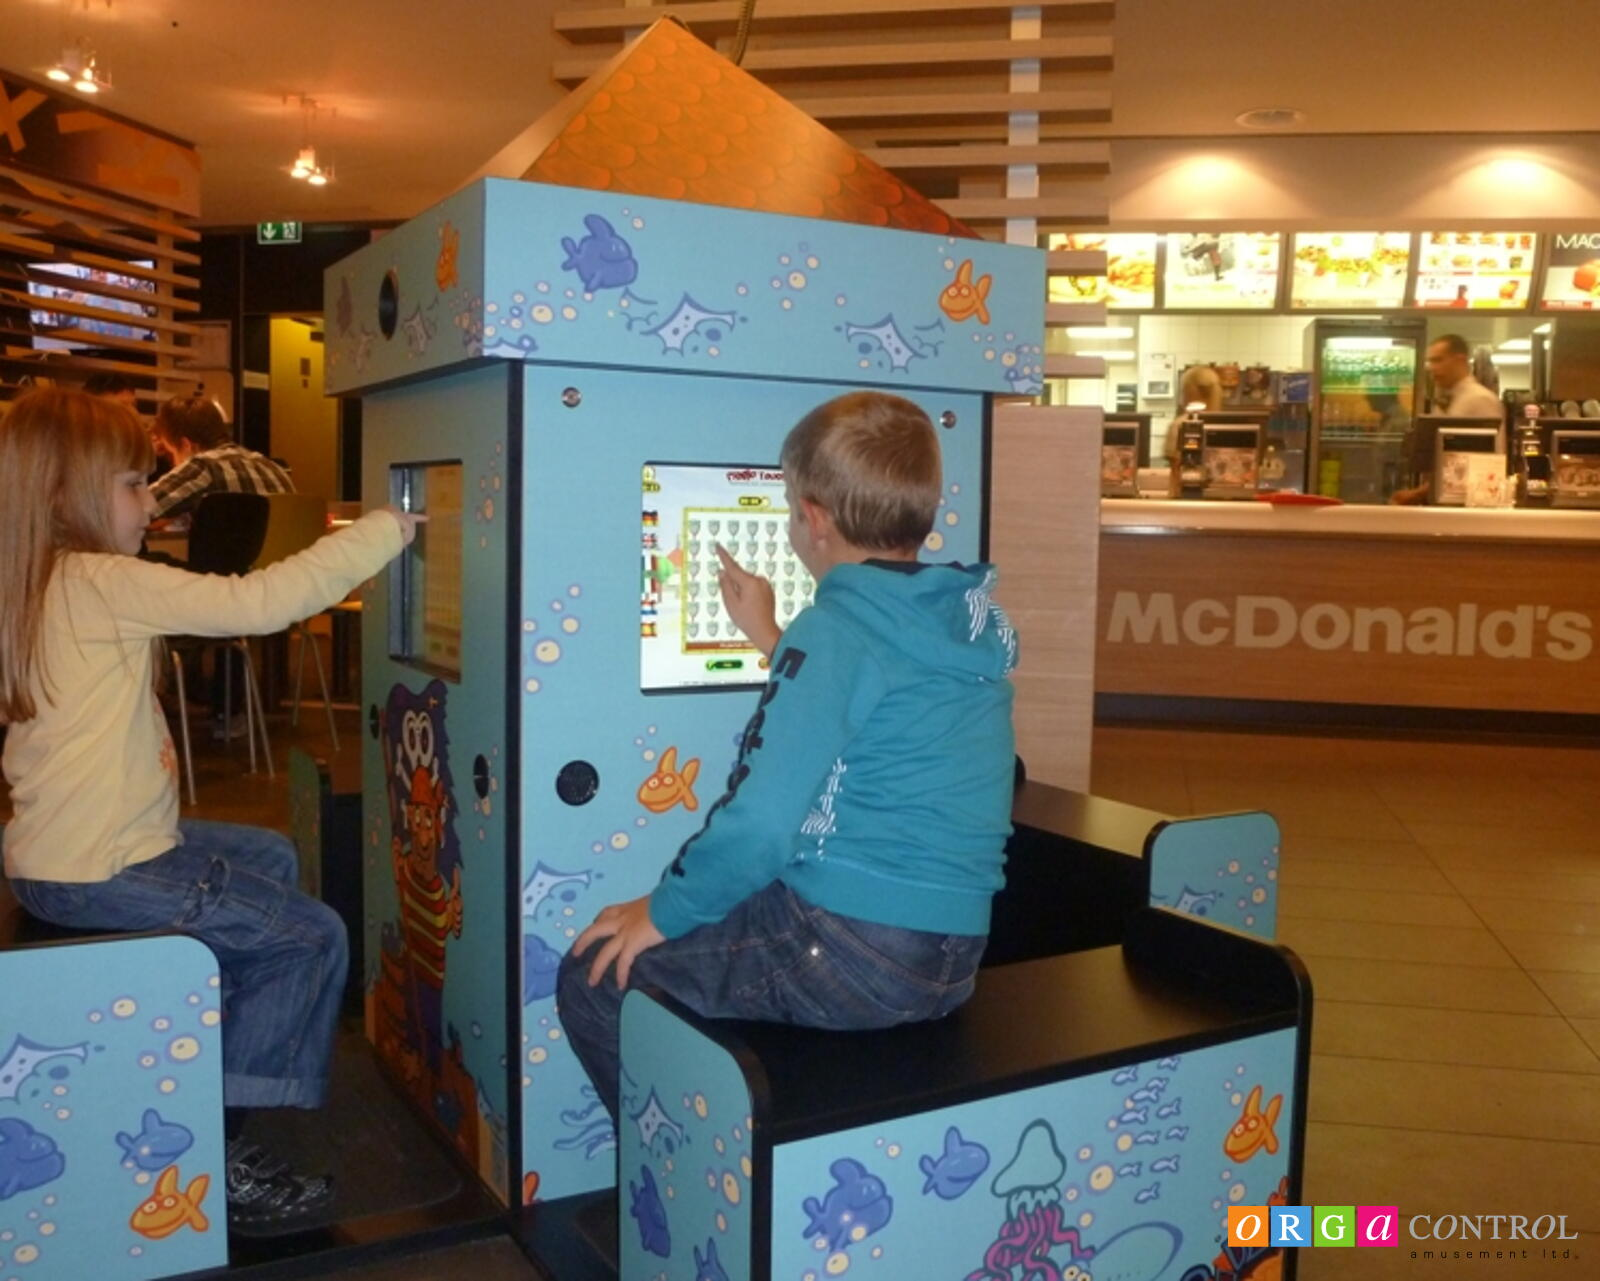 Magic Tower with 4 educational touch screen games @ McDonald's